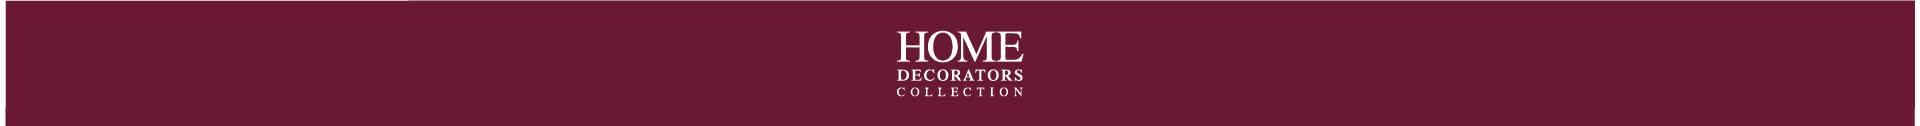 Home Decorators Collection Bamboo Flooring